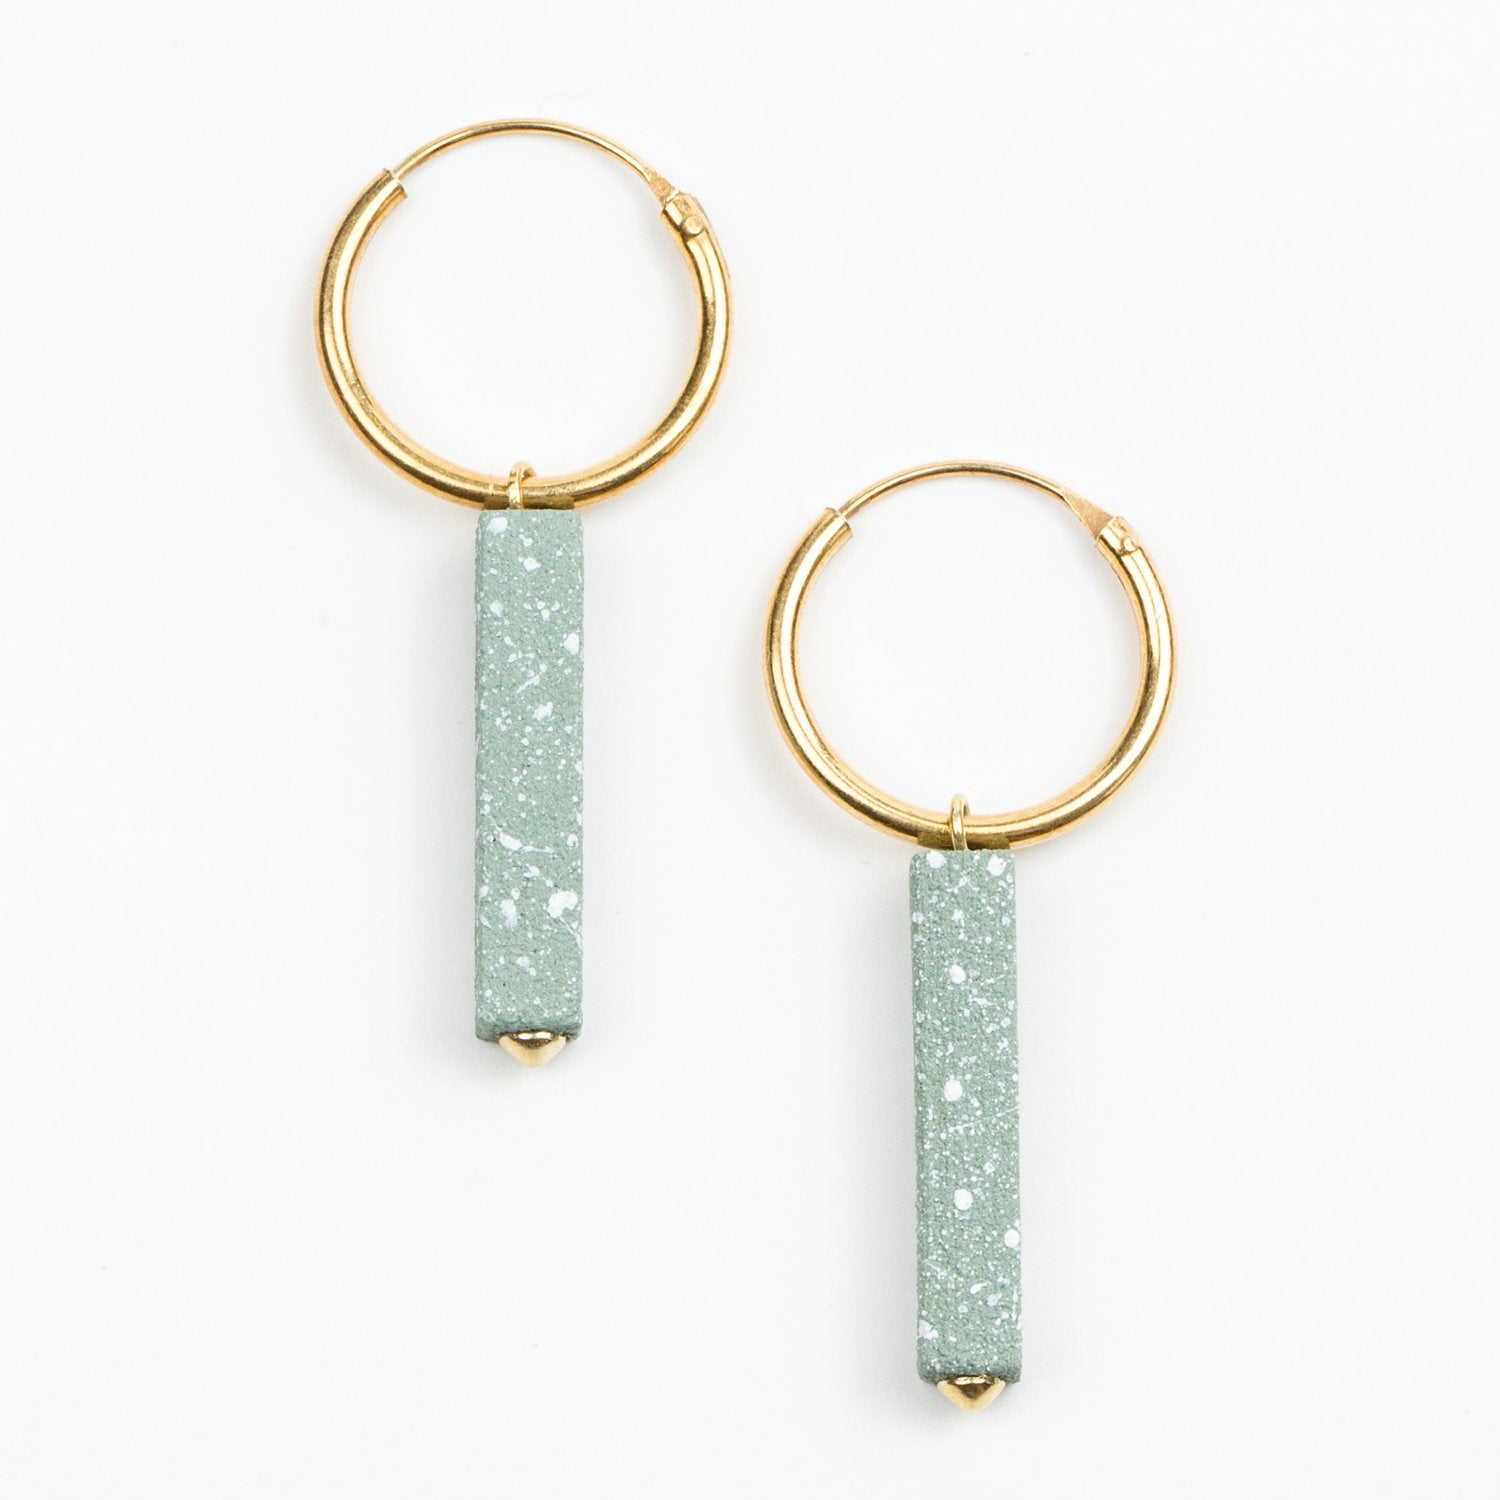 A pair of green speckled earrings